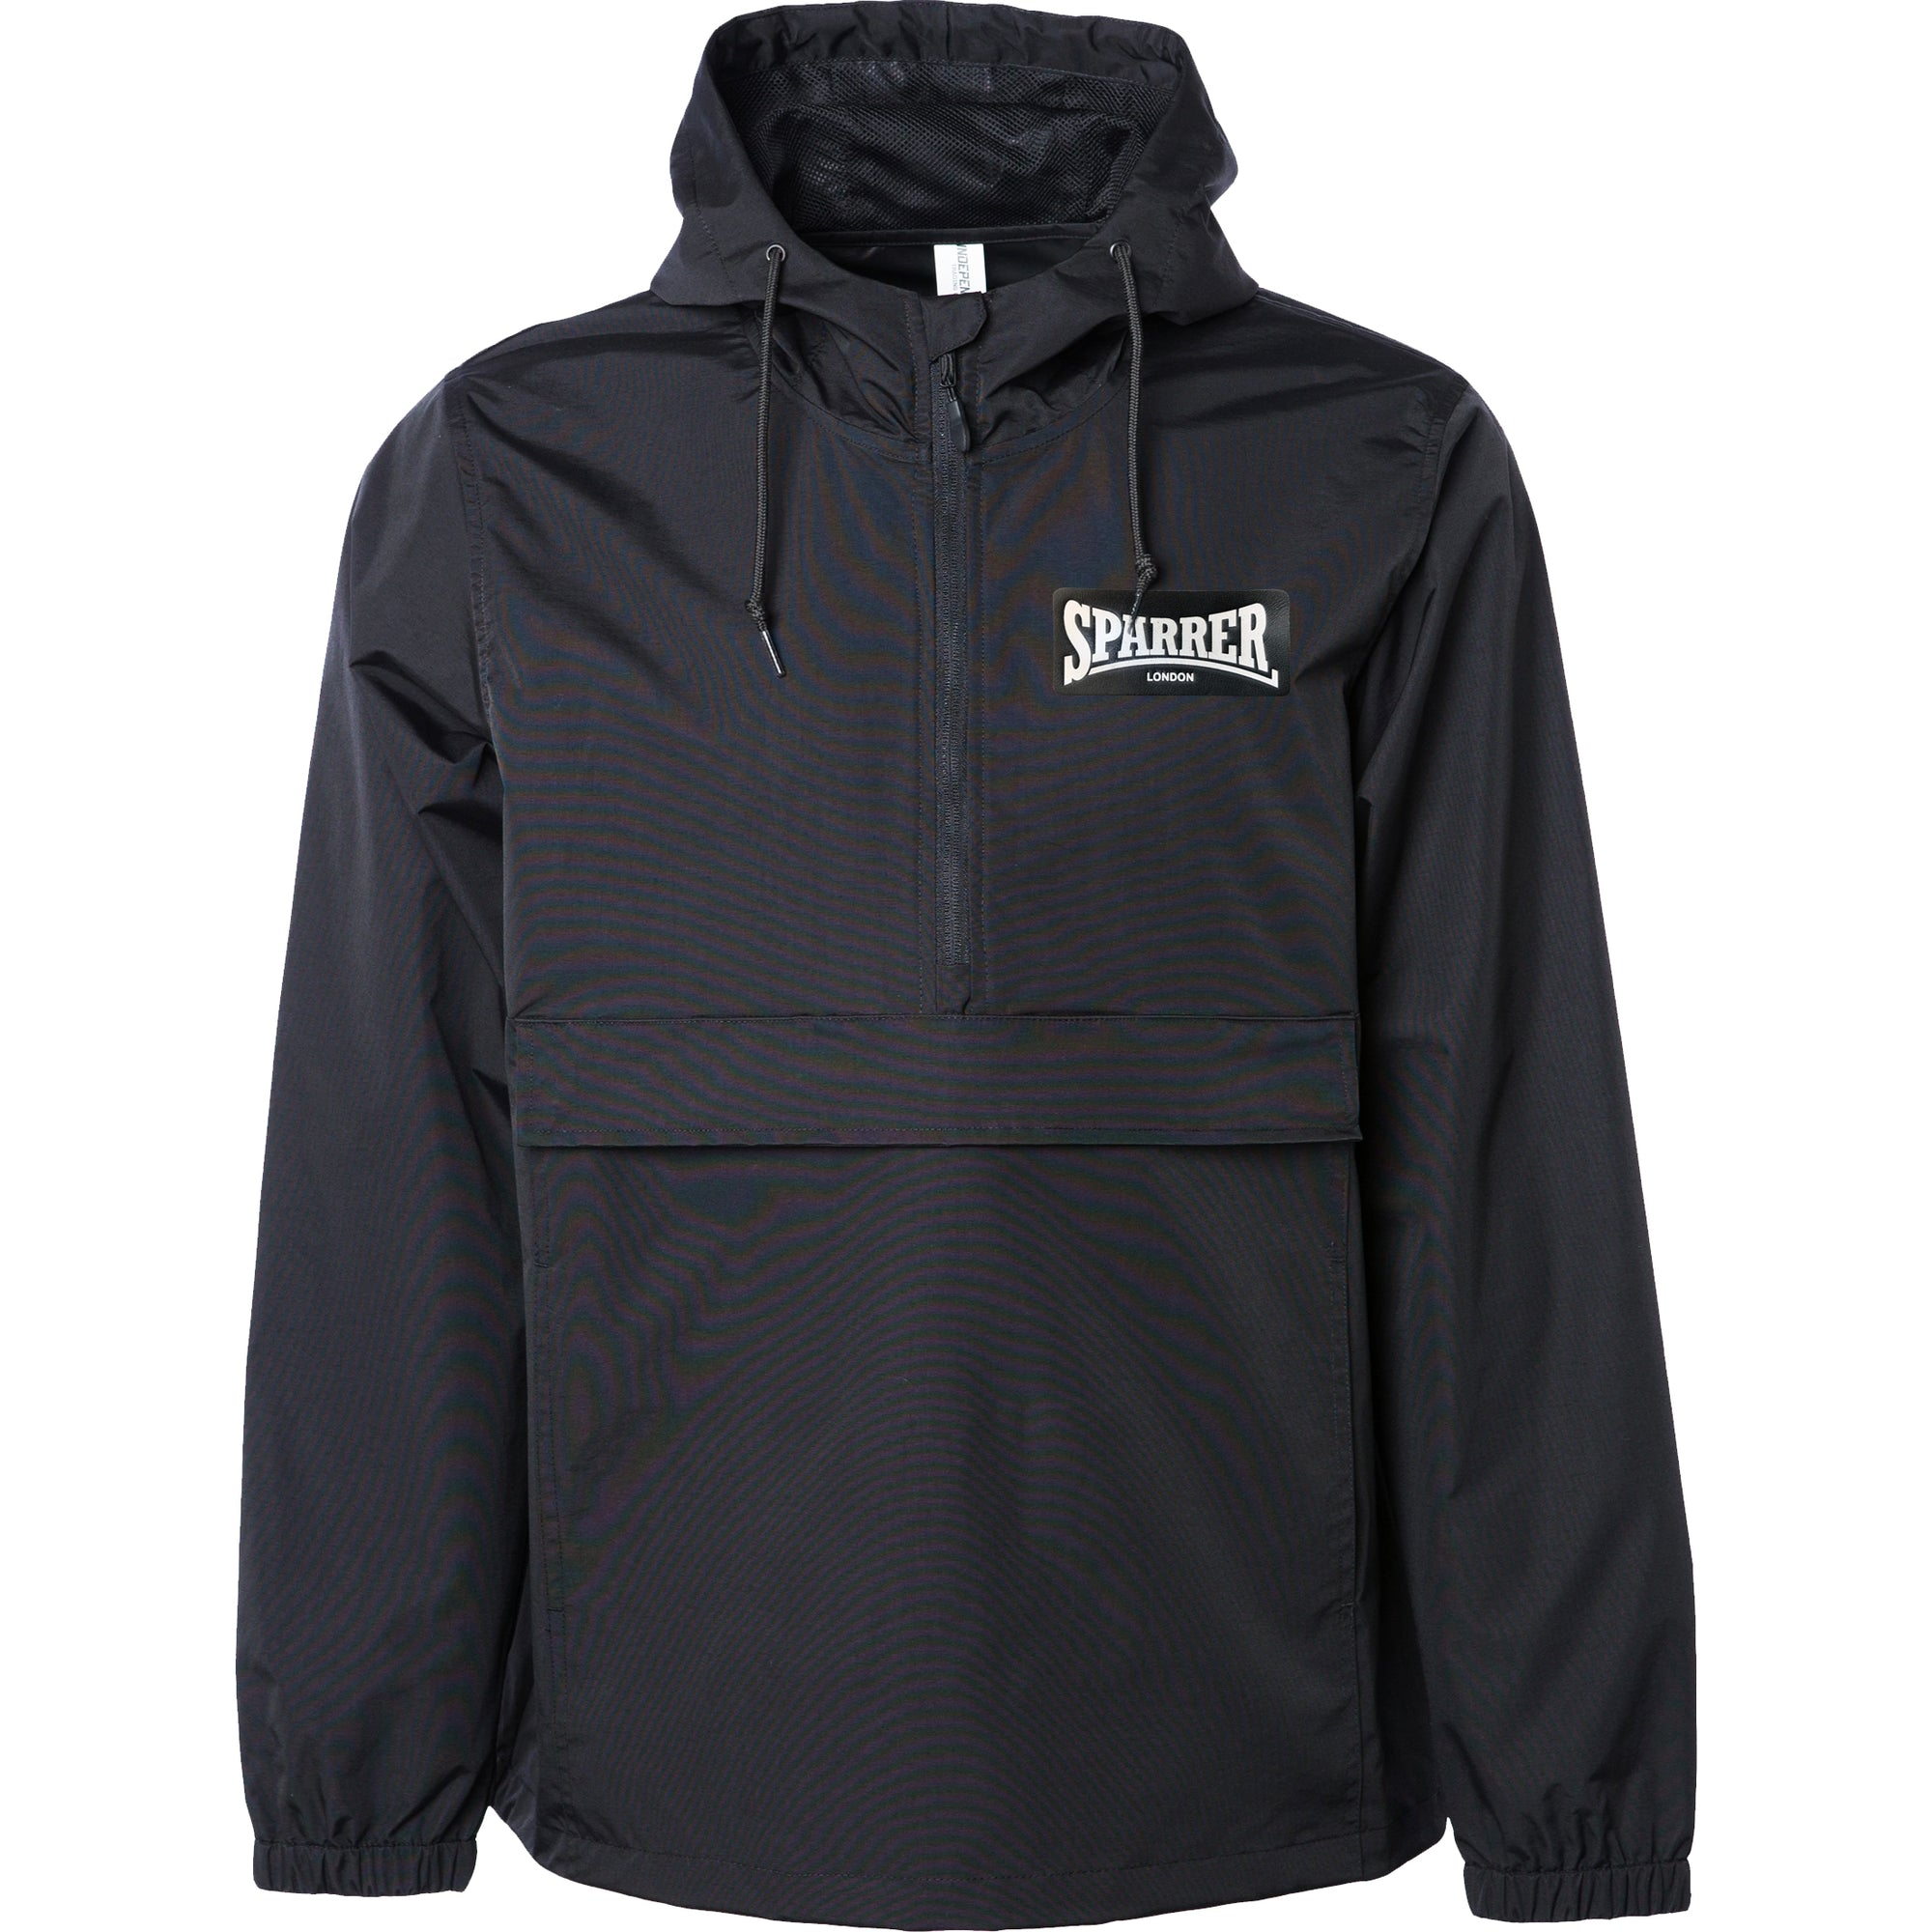 Cock Sparrer - Sparrer London - Windbreaker Jacket - Black